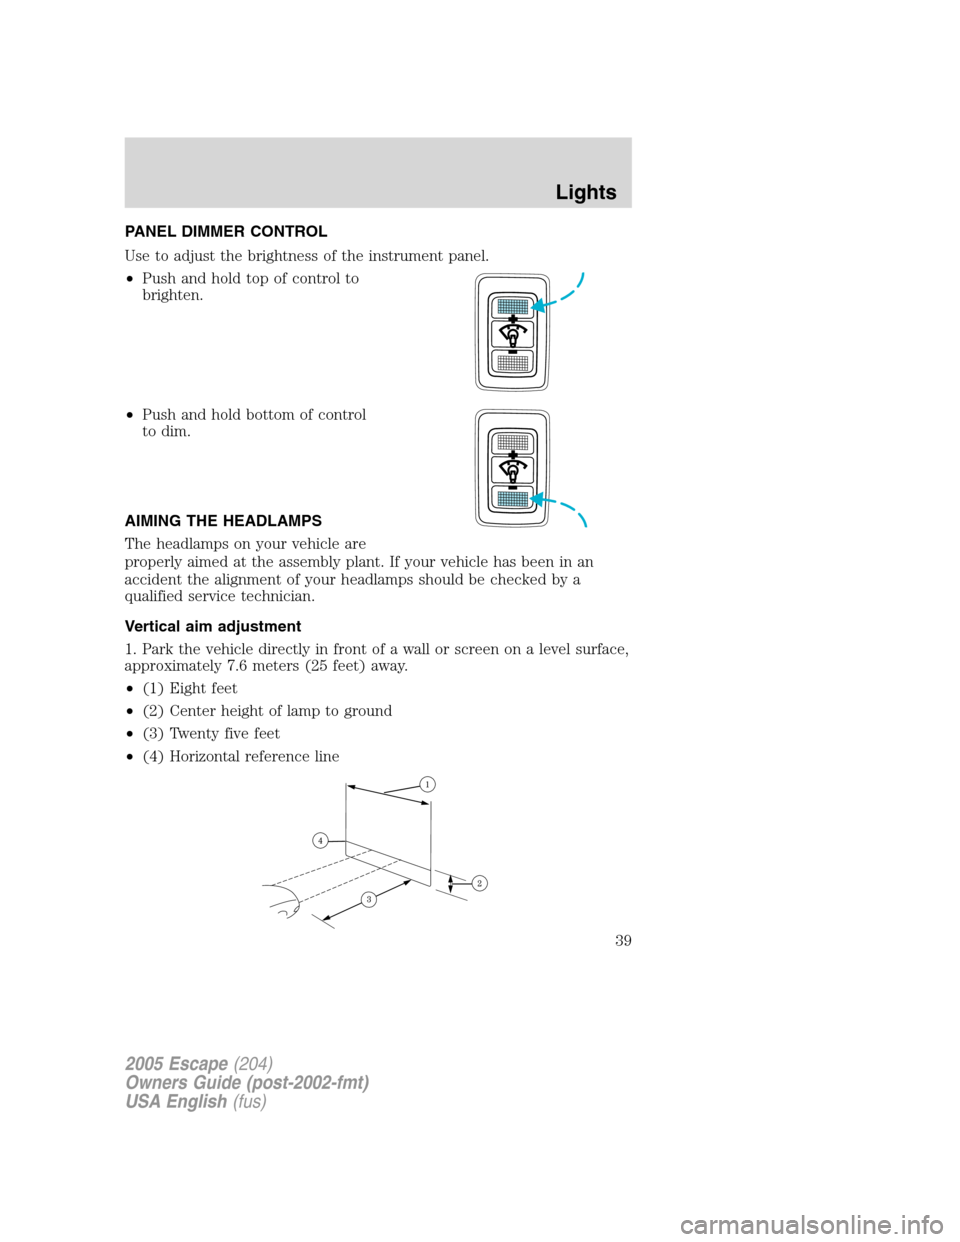 Ford escape 2005 1 g owners manual page 39 panel dimmer control